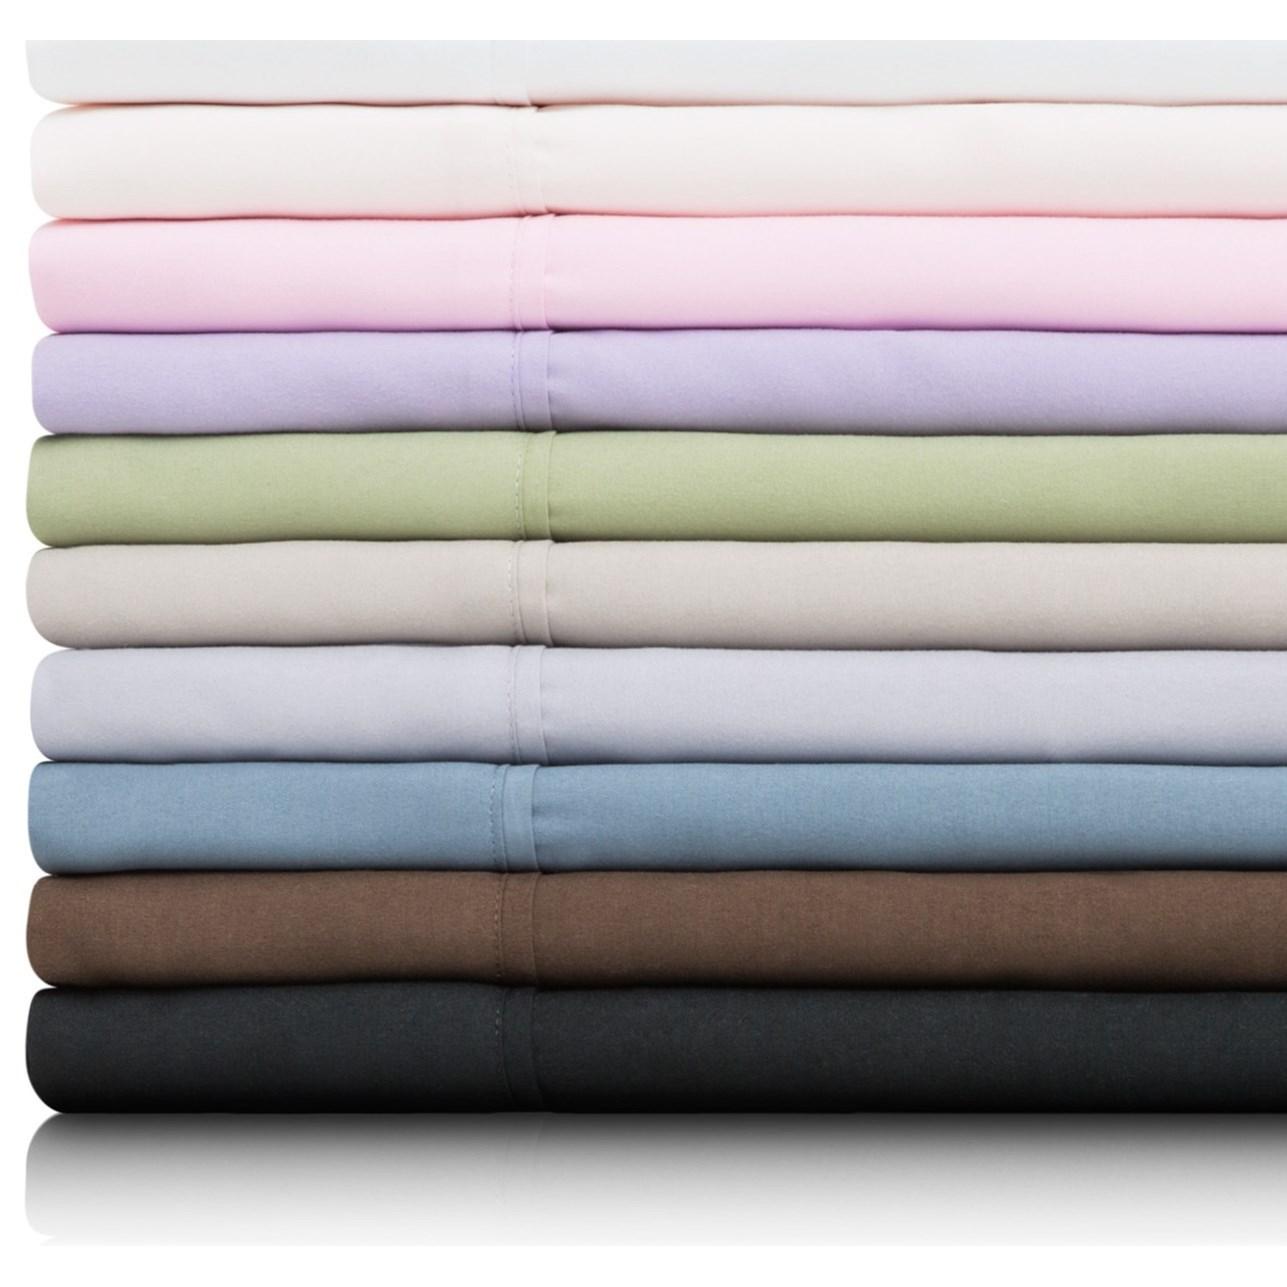 Malouf Brushed Microfiber Queen Woven™ Brushed Microfiber Short Sheet  - Item Number: MA90RQBHMS